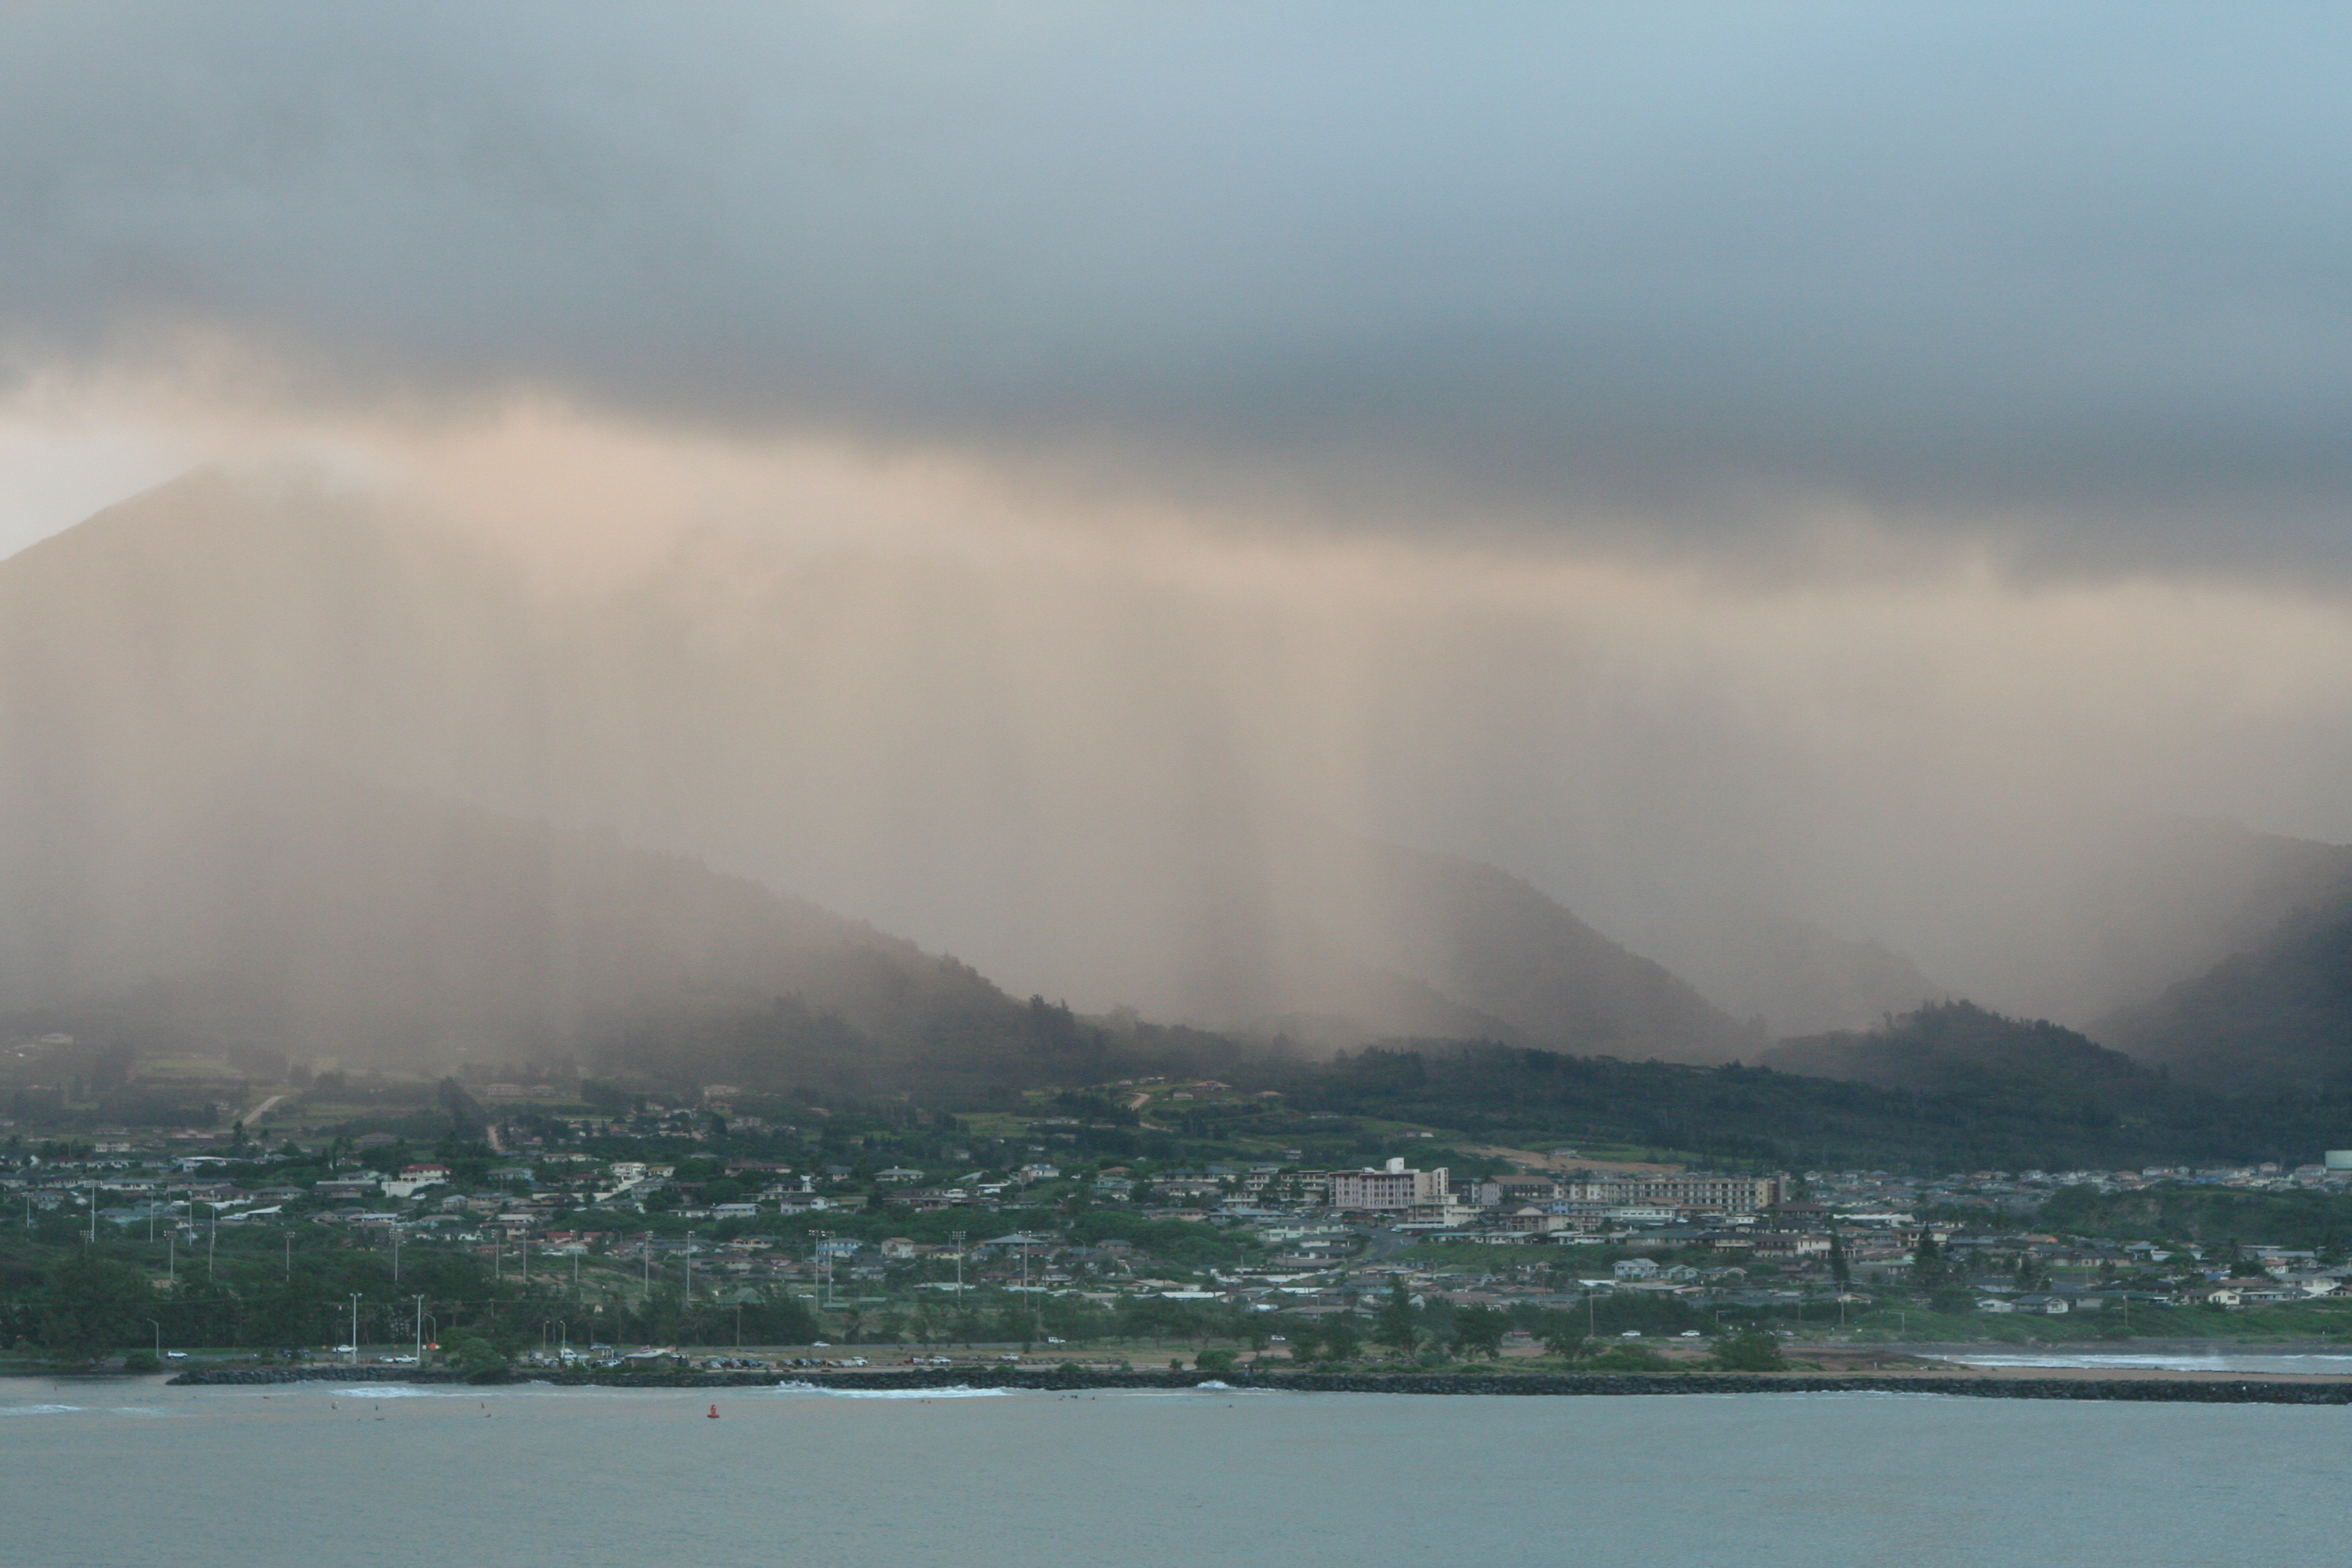 Going to Hawaii? Pack your umbrella!